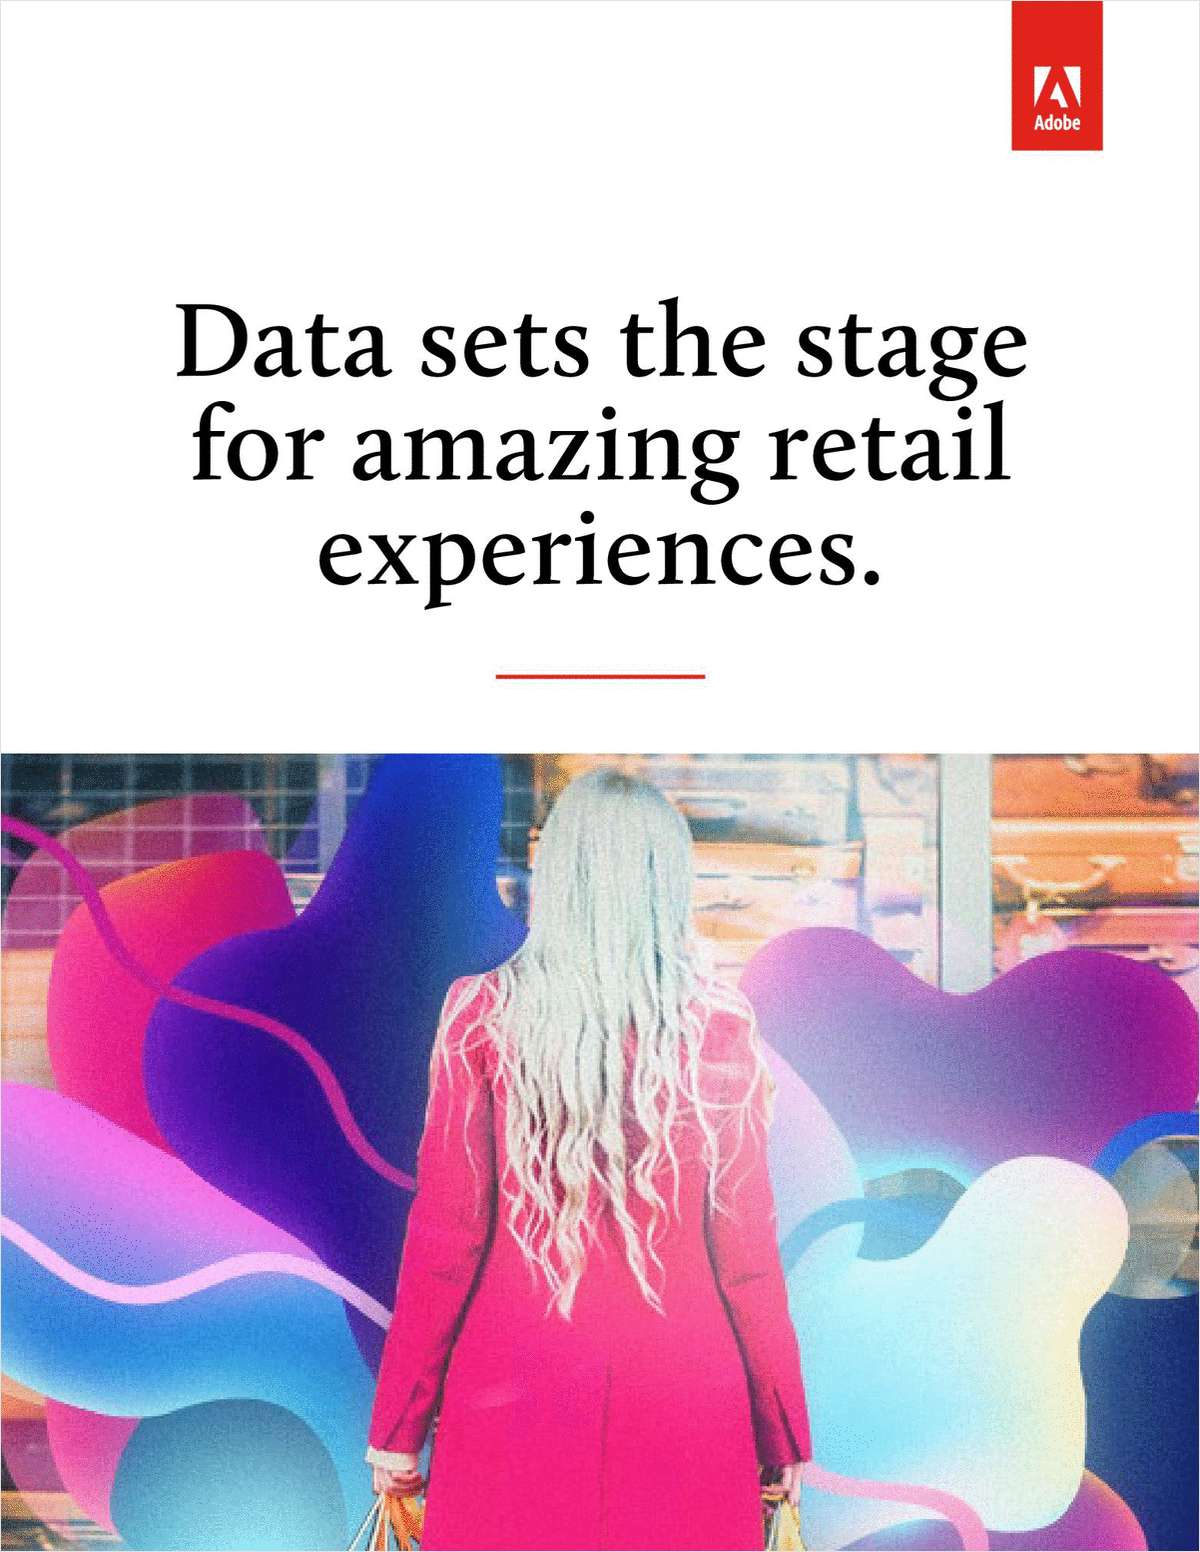 Data Sets the Stage for Amazing Retail Experiences